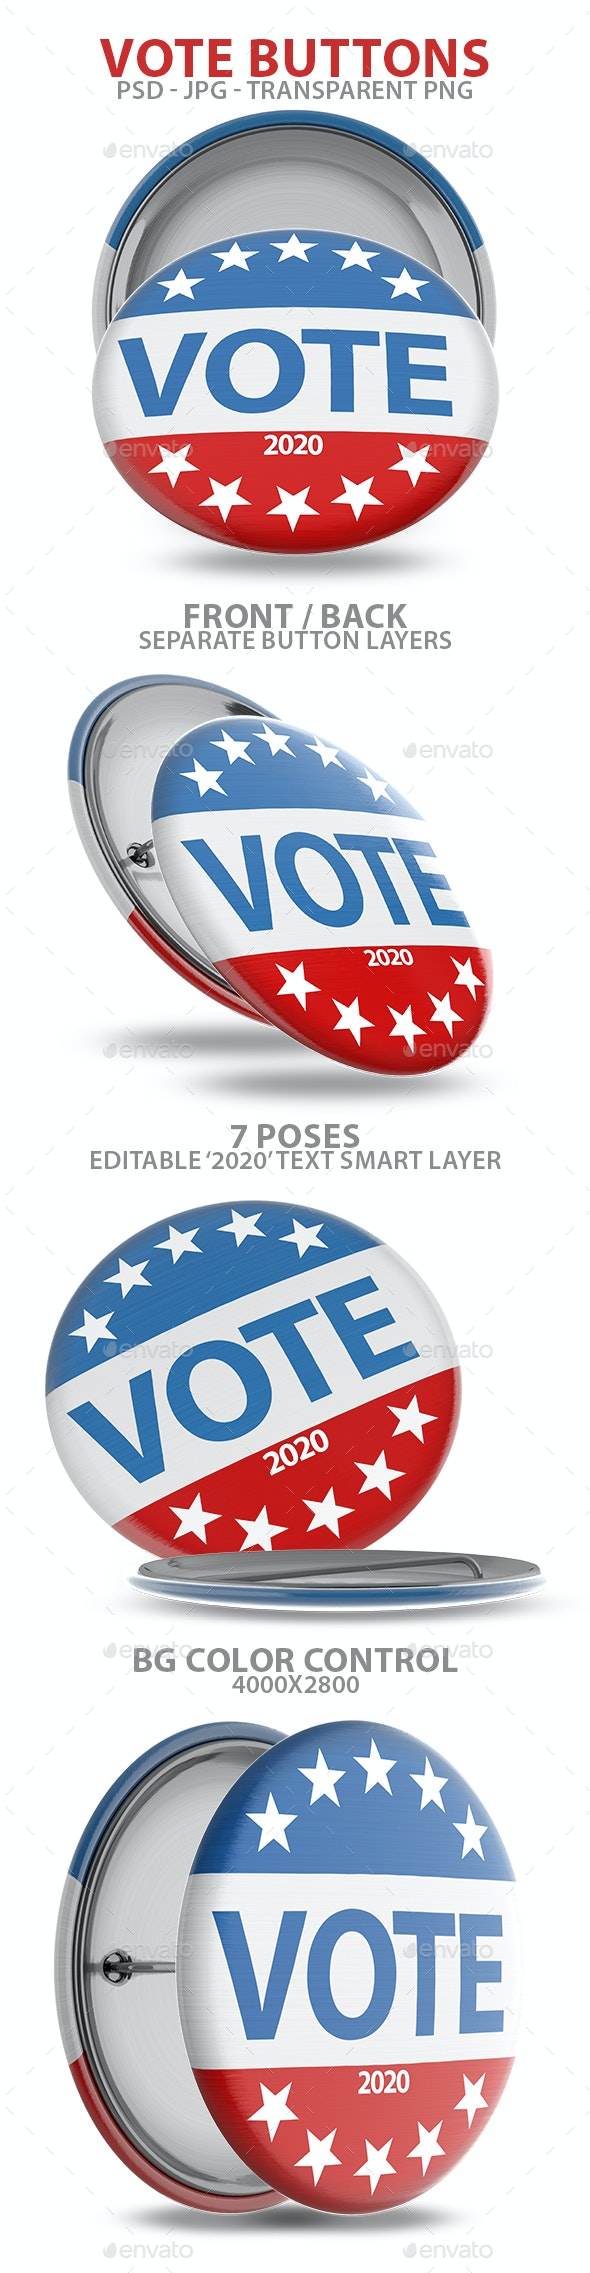 Vote Buttons 3D Renders - Objects 3D Renders